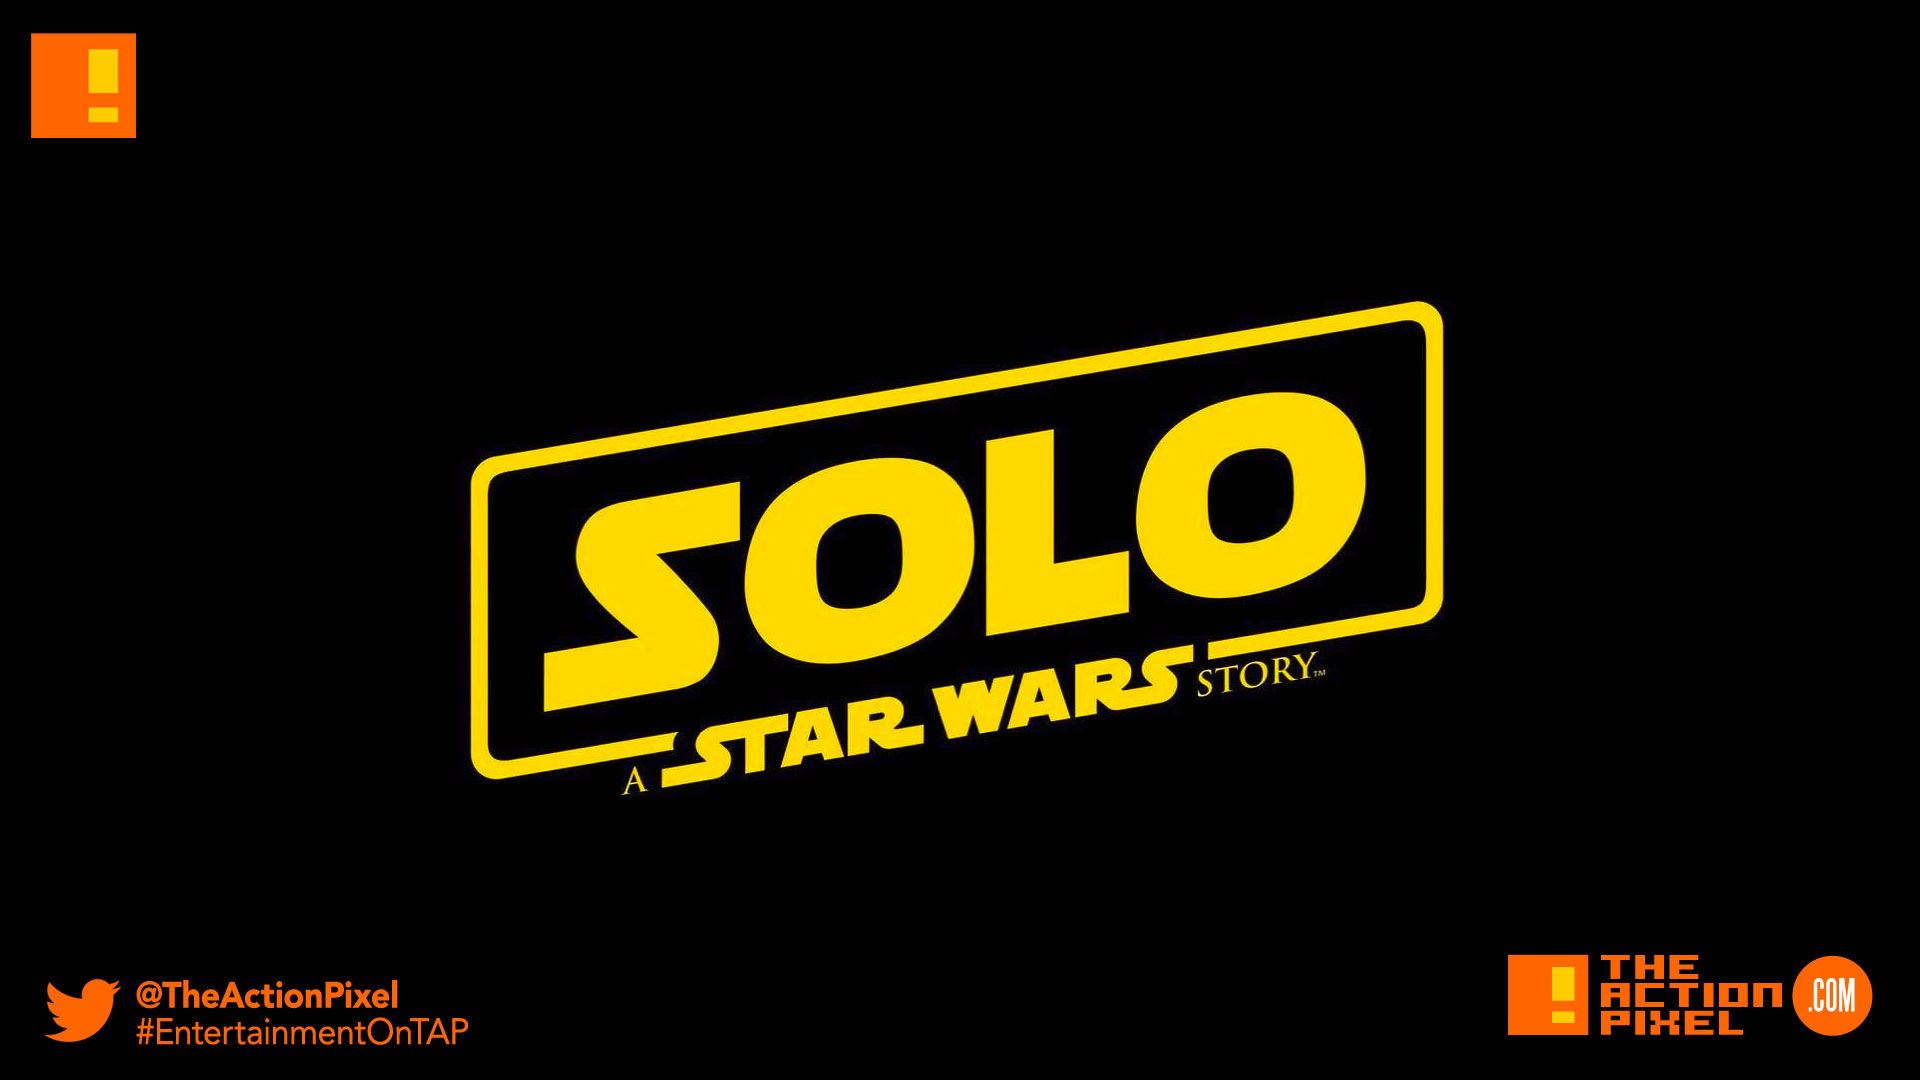 ron howard, han solo, a star wars story, alden ehrenreich, han solo, the action pixel, star wars, solo movie, han solo solo movie, a star wars story, entertainment on tap, donald glover,woody harrelson,